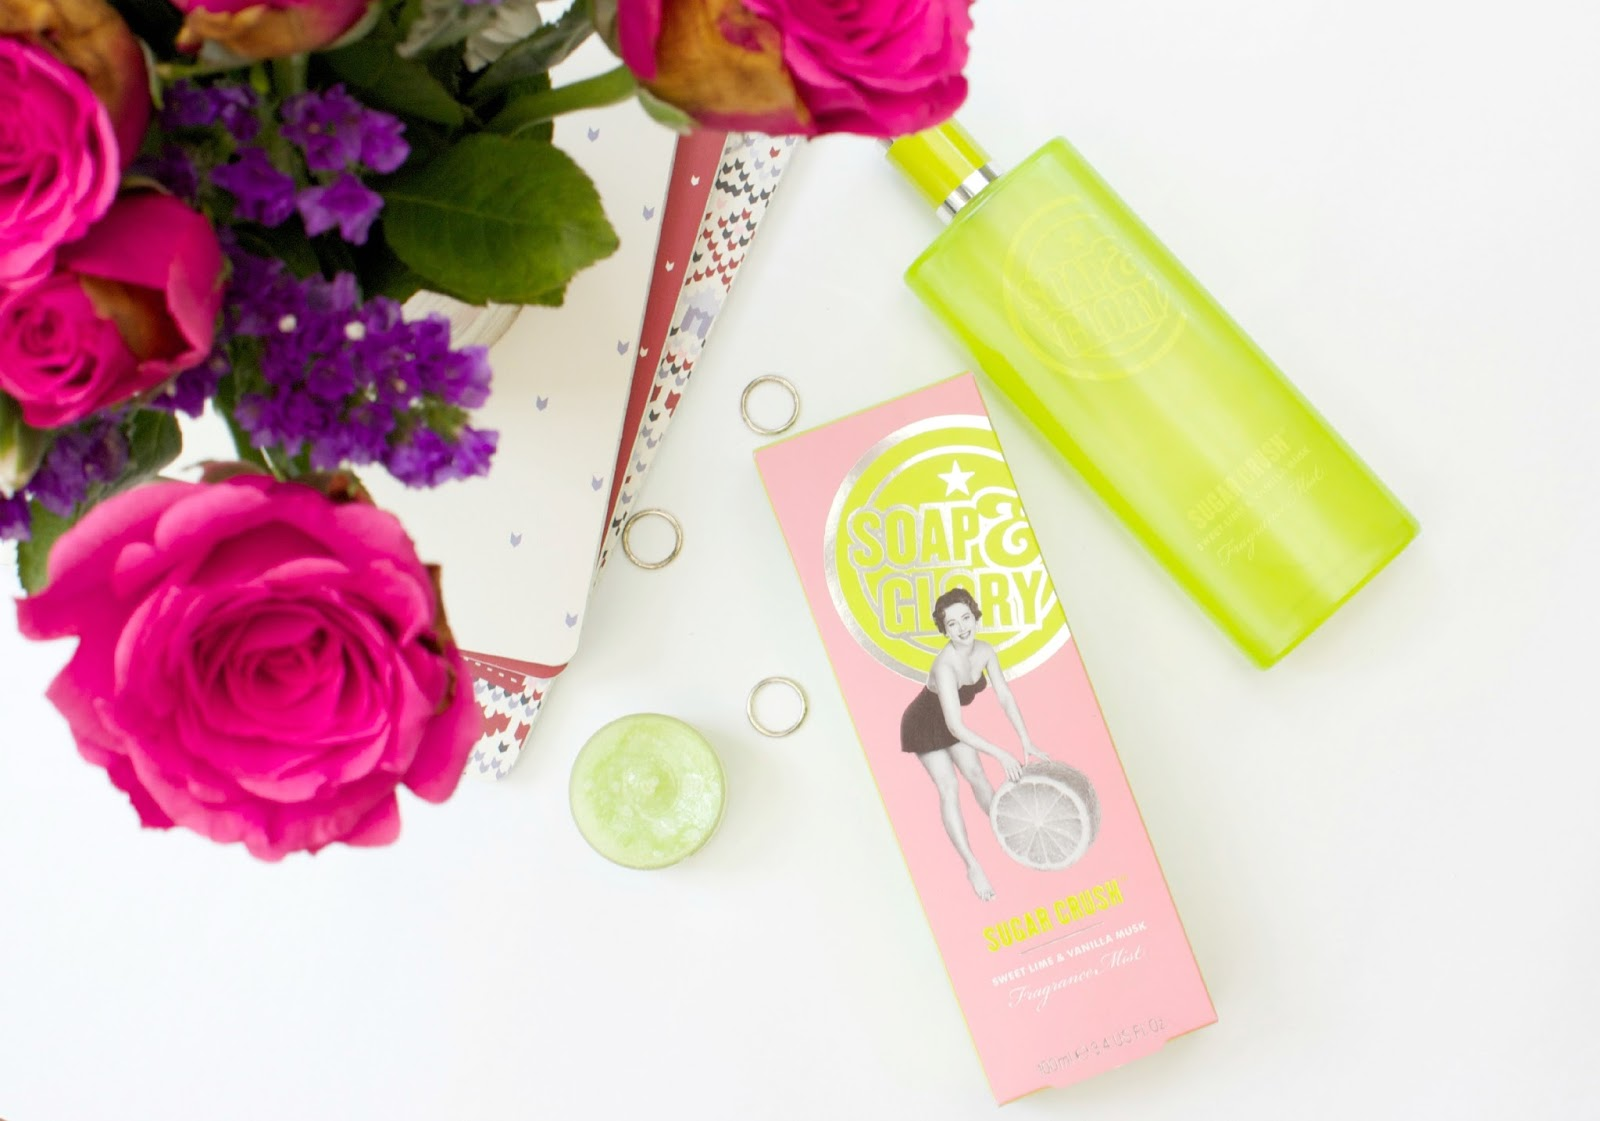 Soap & Glory Sugar Crush Sweet Lime & Vanilla Musk Fragrance Mist